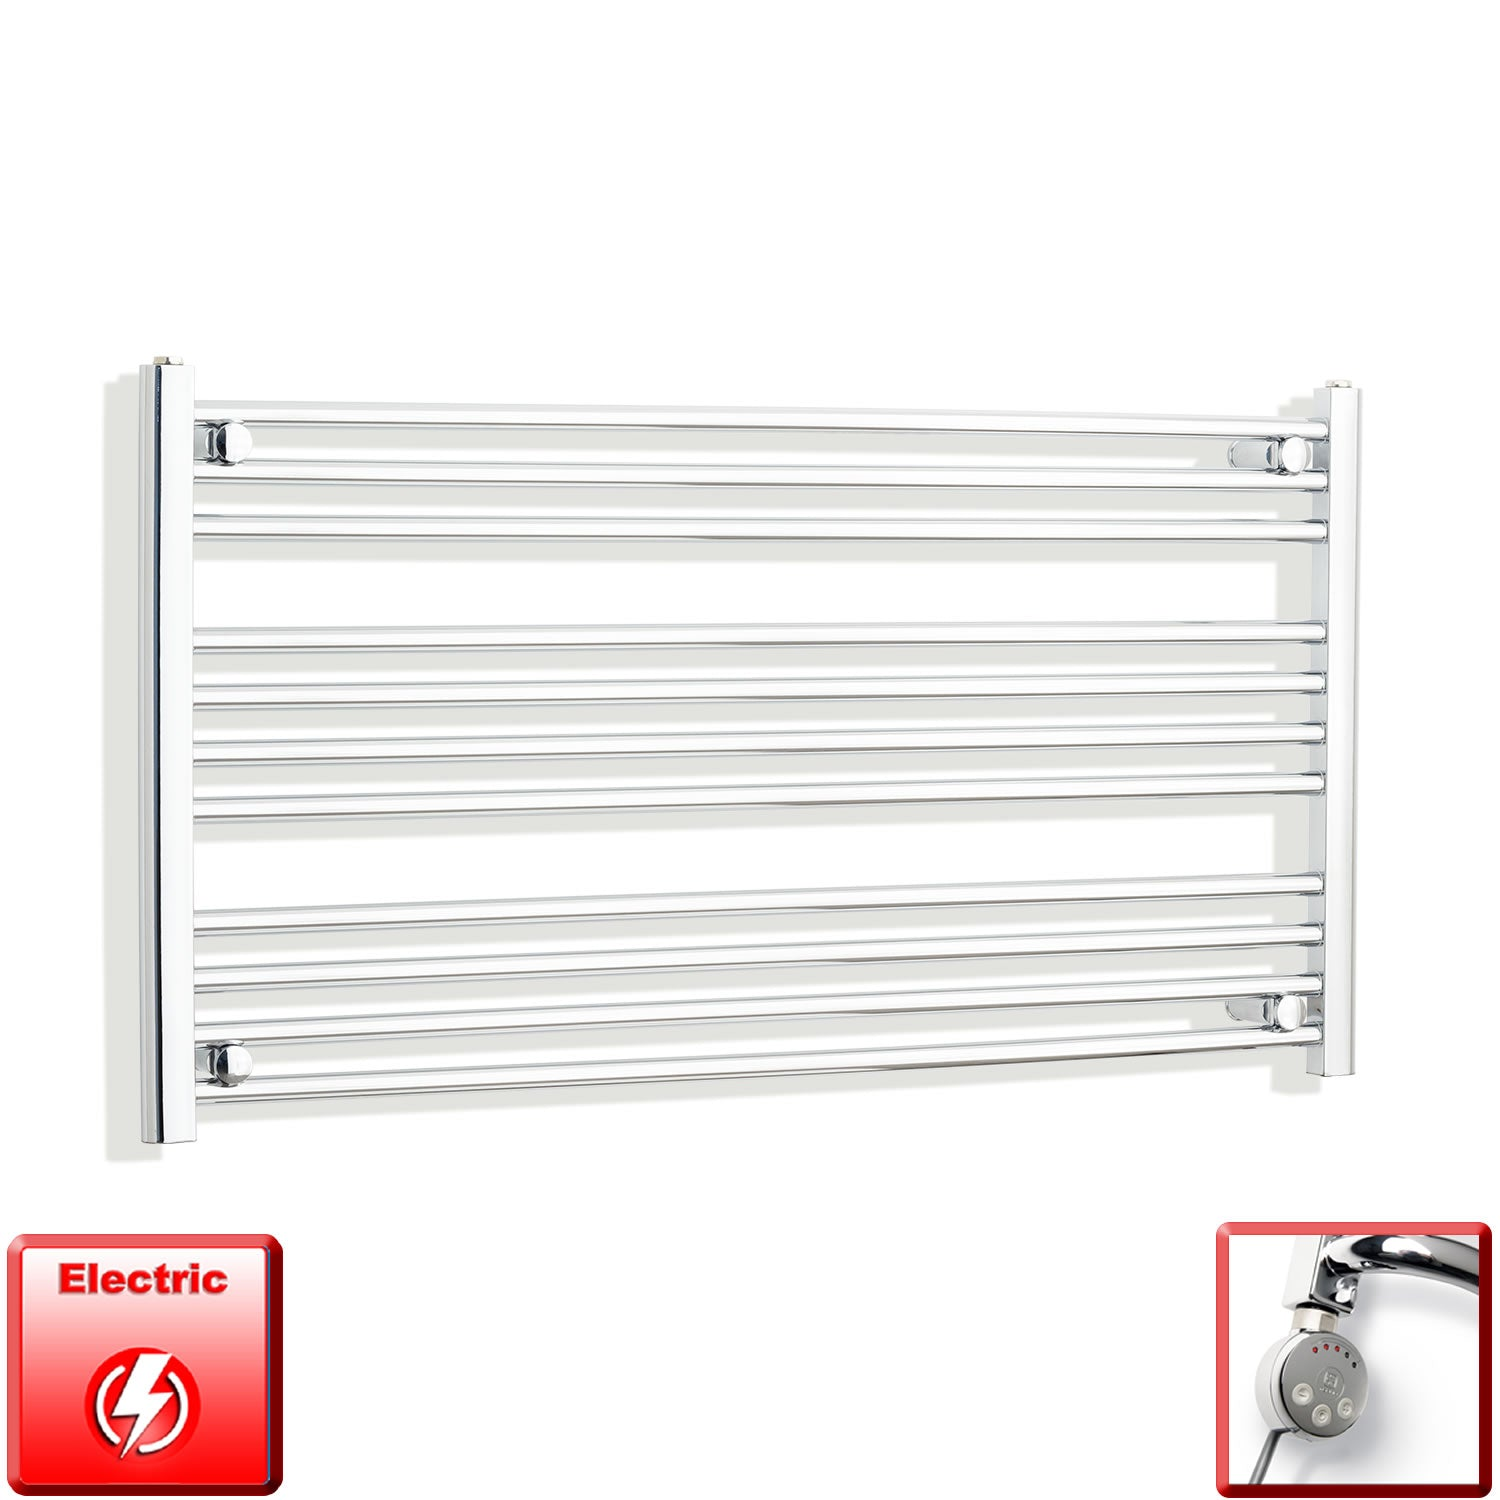 1000mm Wide 600mm High Flat Chrome Pre-Filled Electric Heated Towel Rail Radiator HTR,MEG Thermostatic Element